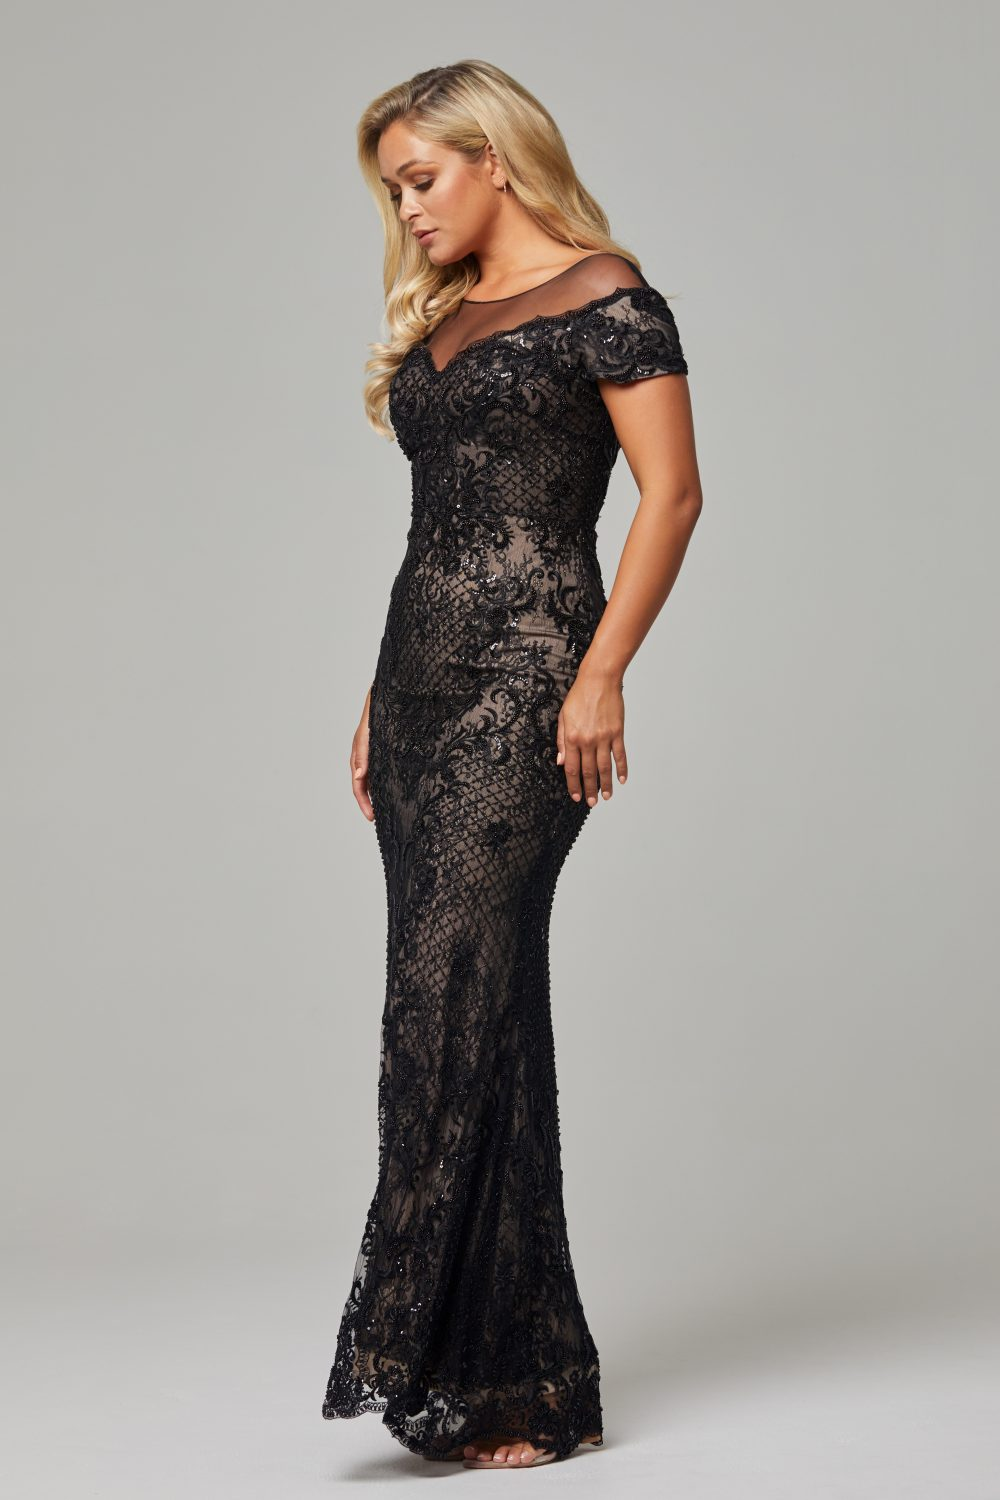 TC228-Black Nude-Evie dress-side